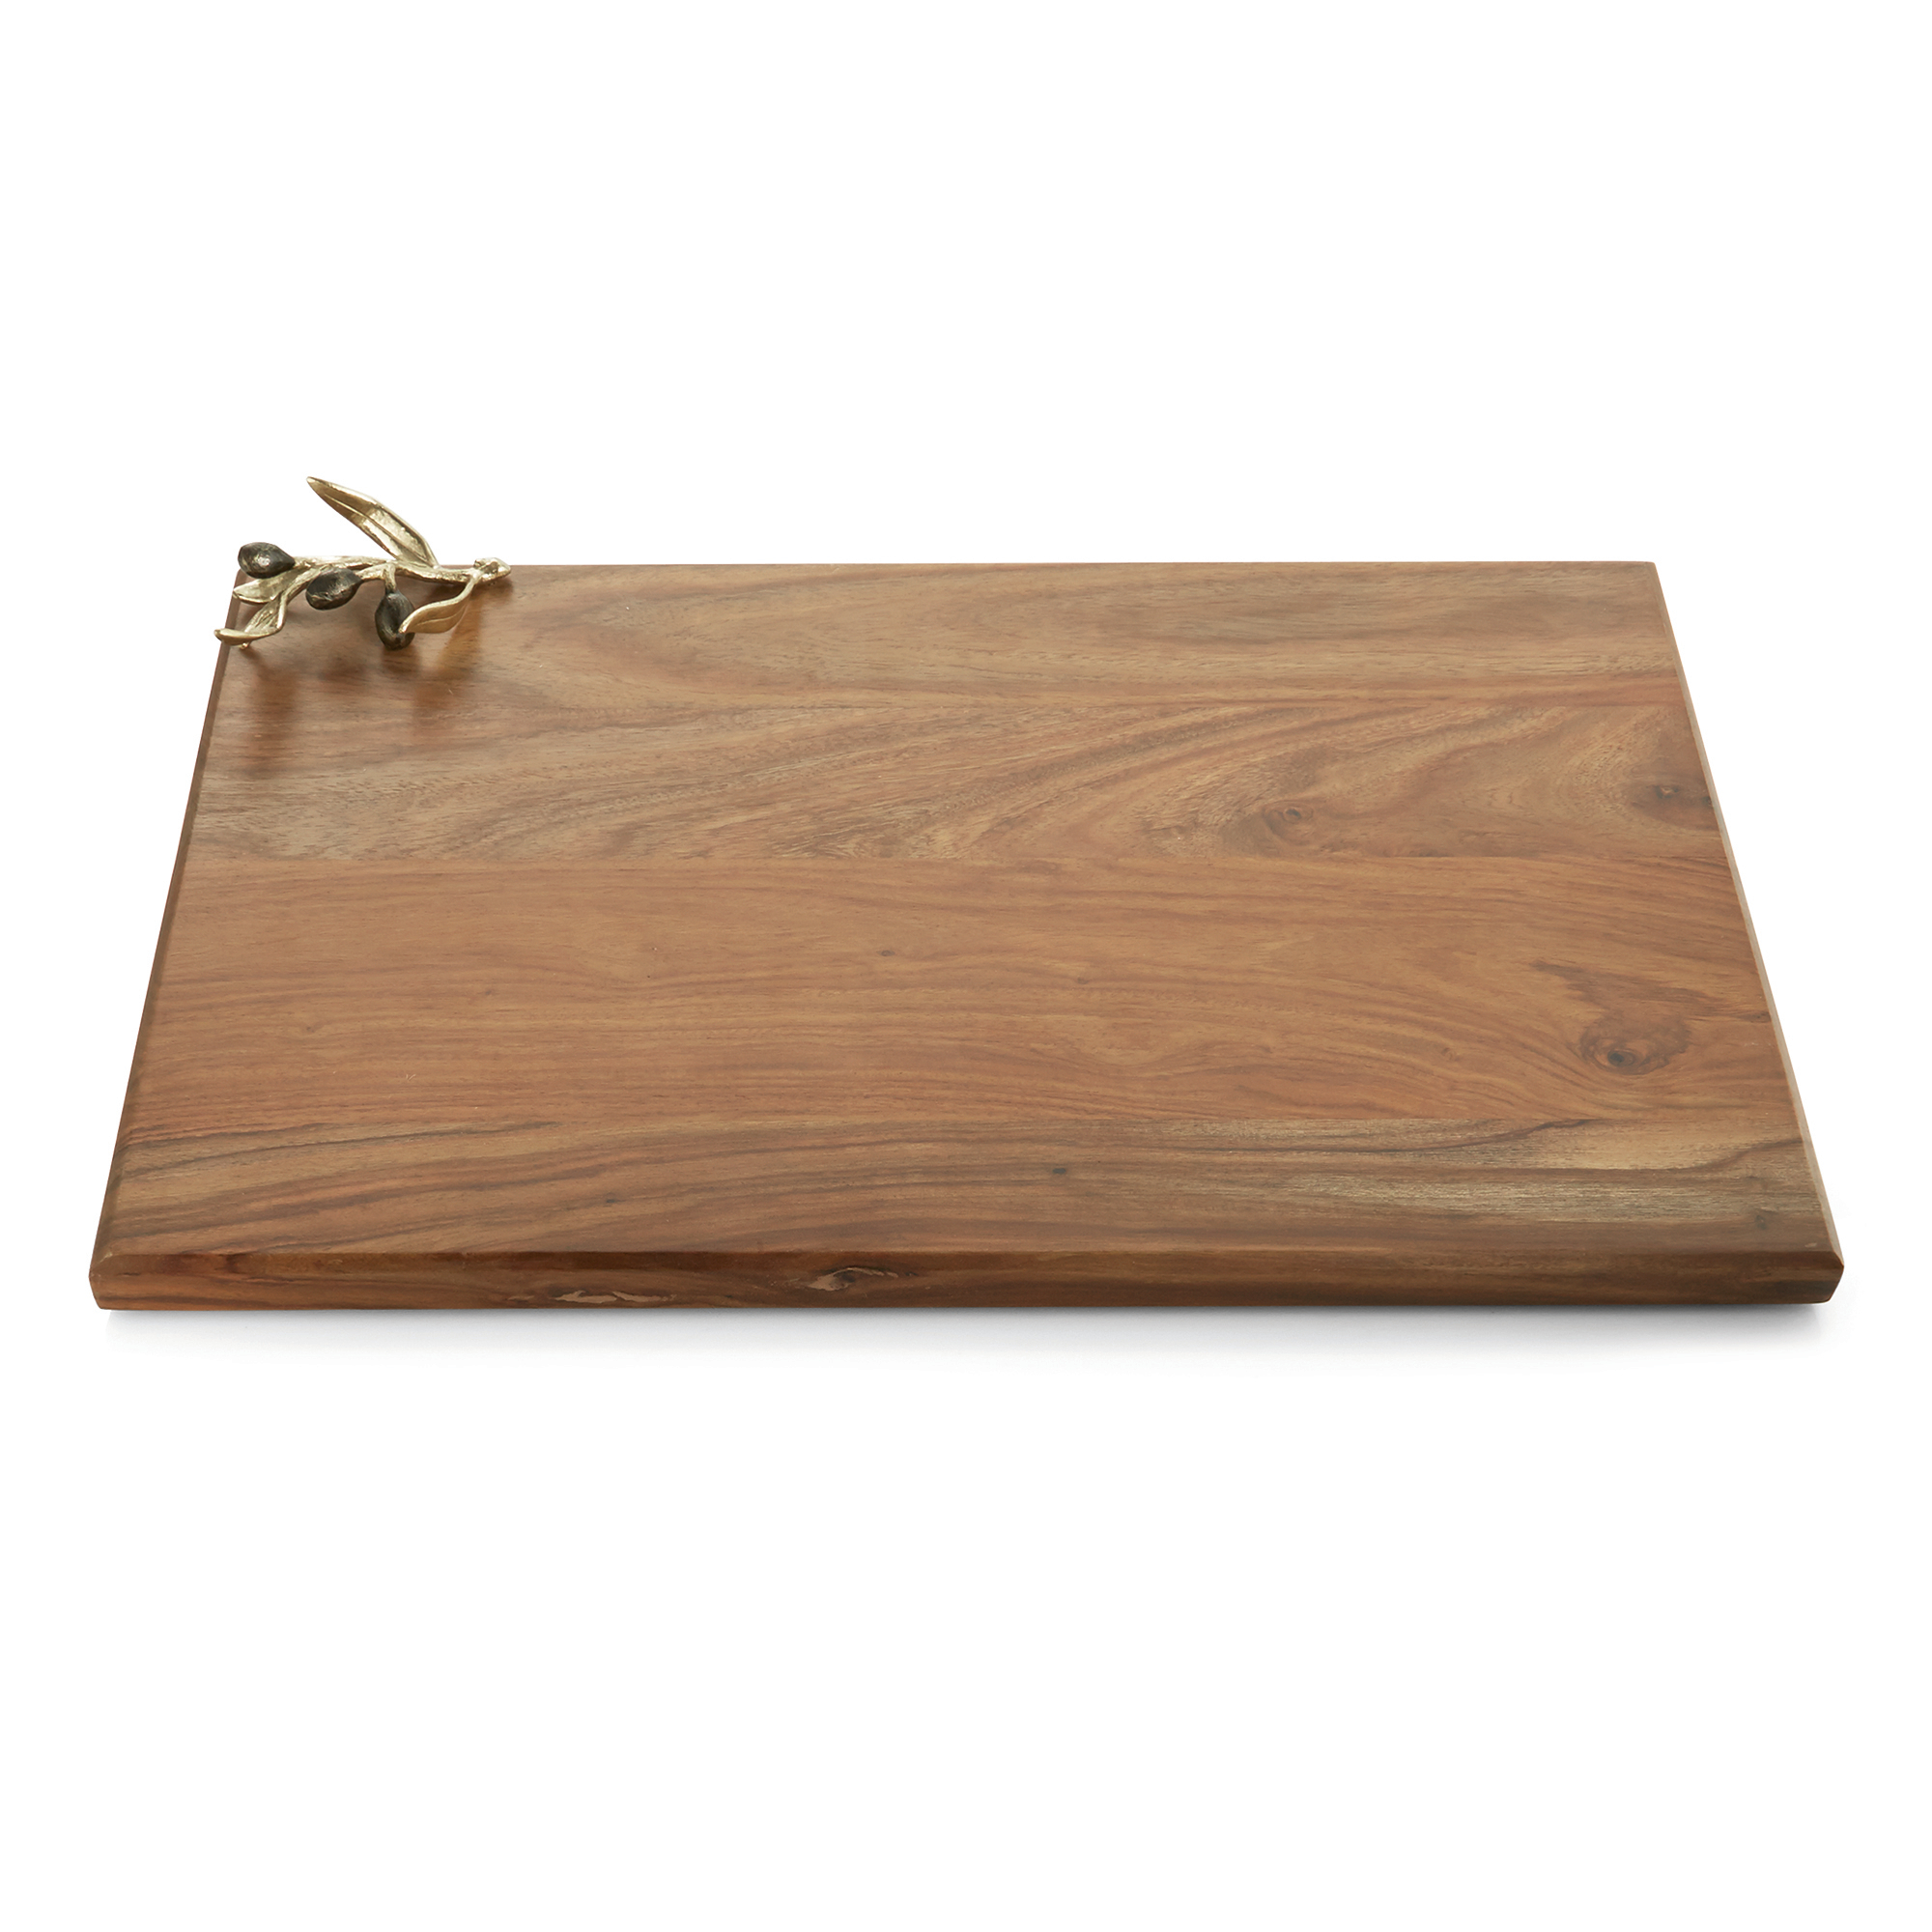 Michael Aram Olive Branch Oversize Wood Serving Board